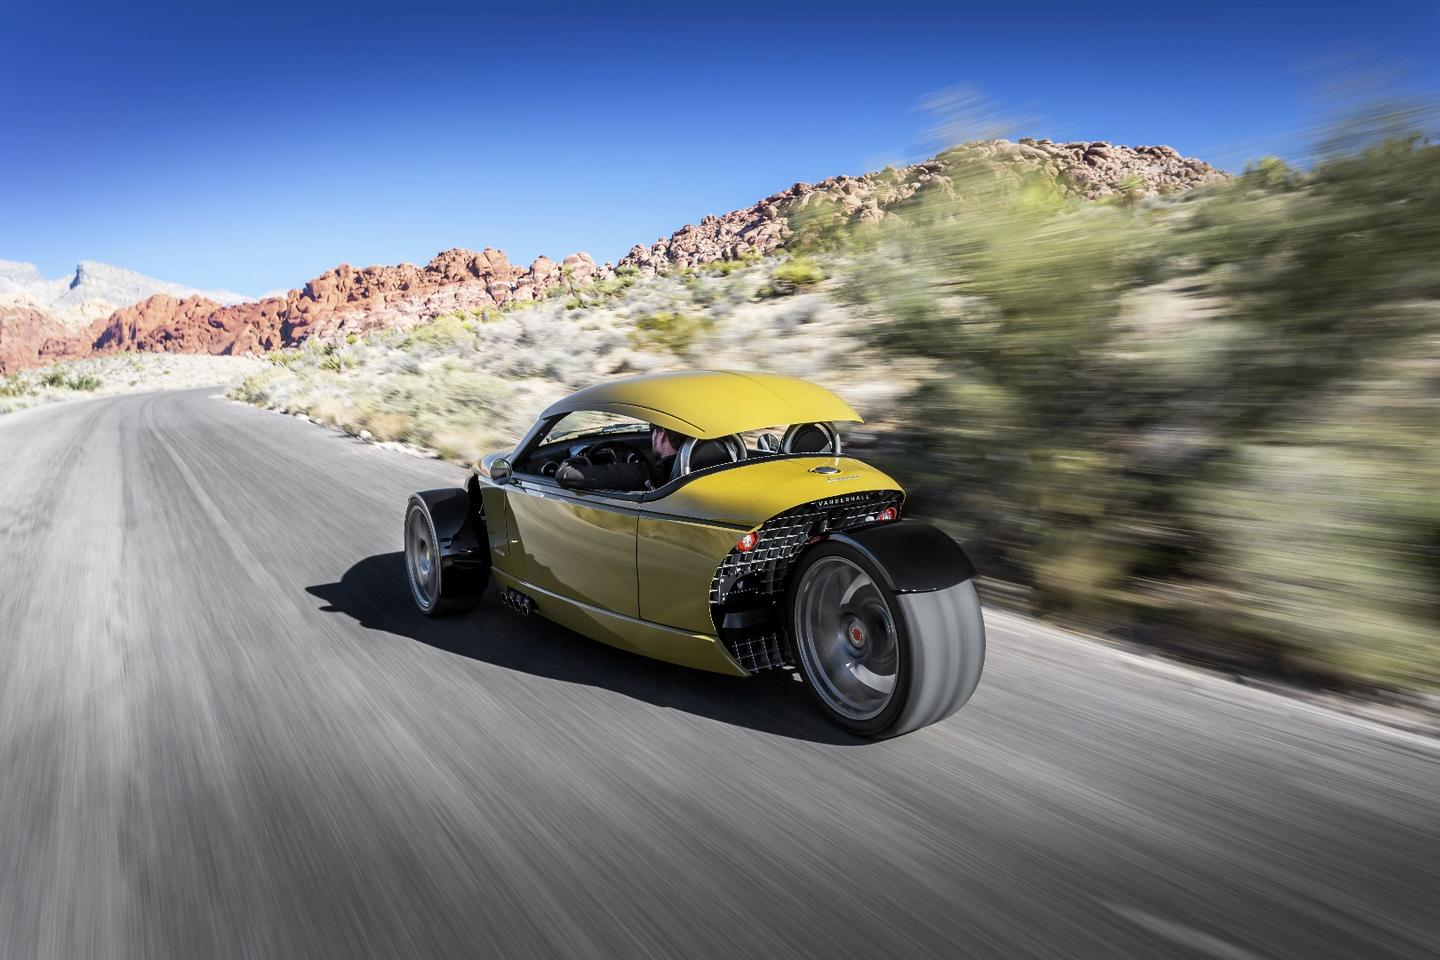 Vanderhall's Laguna treads a different path to weekend fun with its new three-wheel Laguna